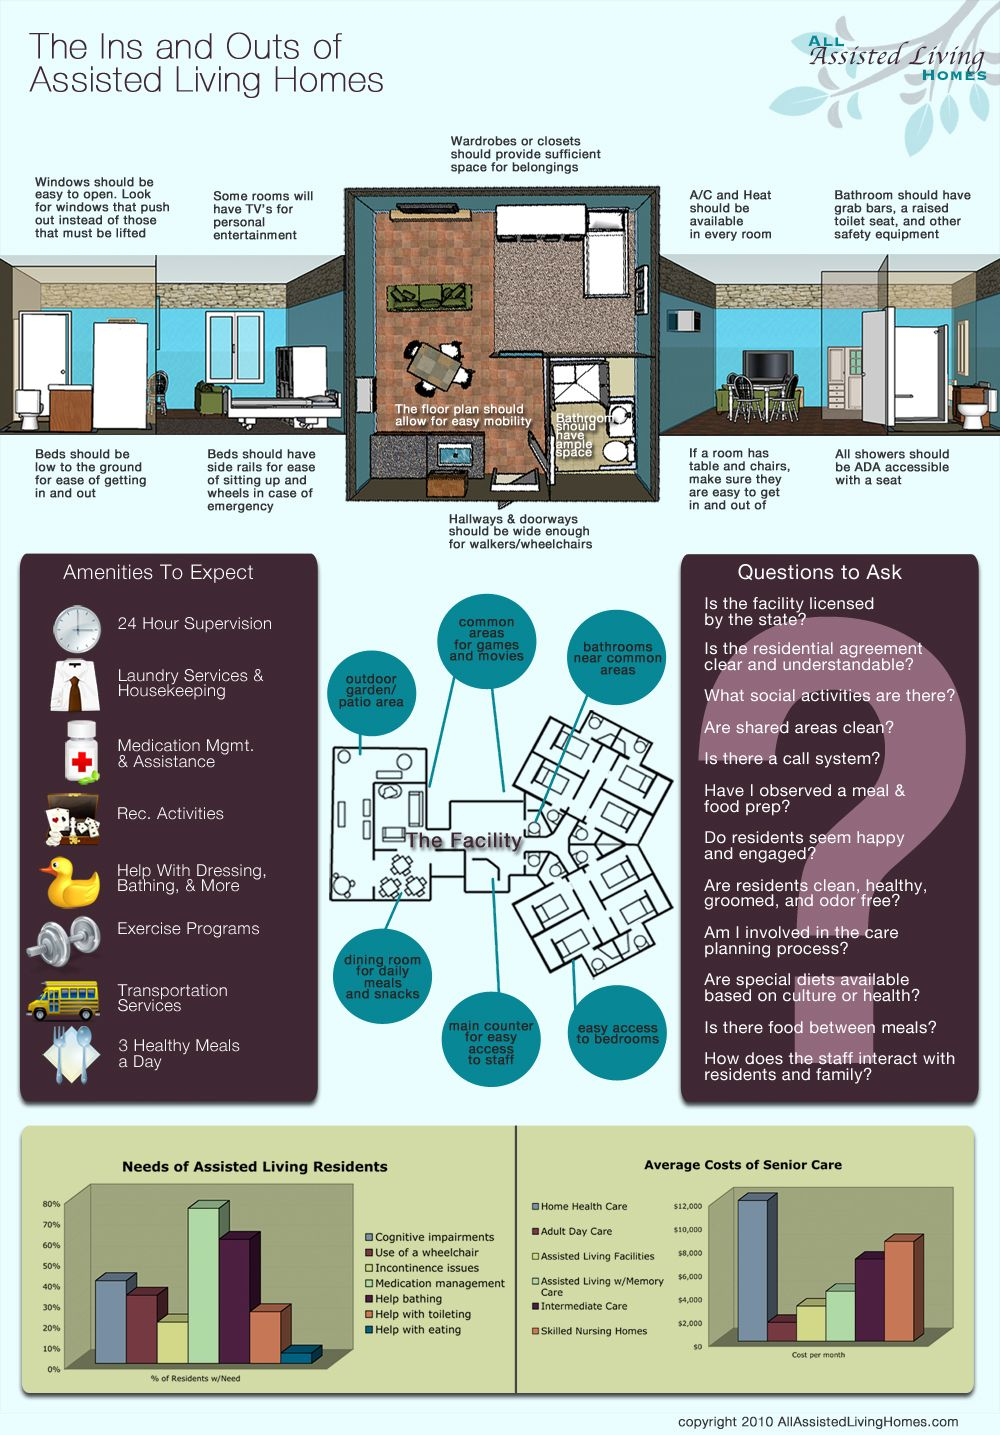 The Ins And Outs Of Assisted Living Homes. Did You Know